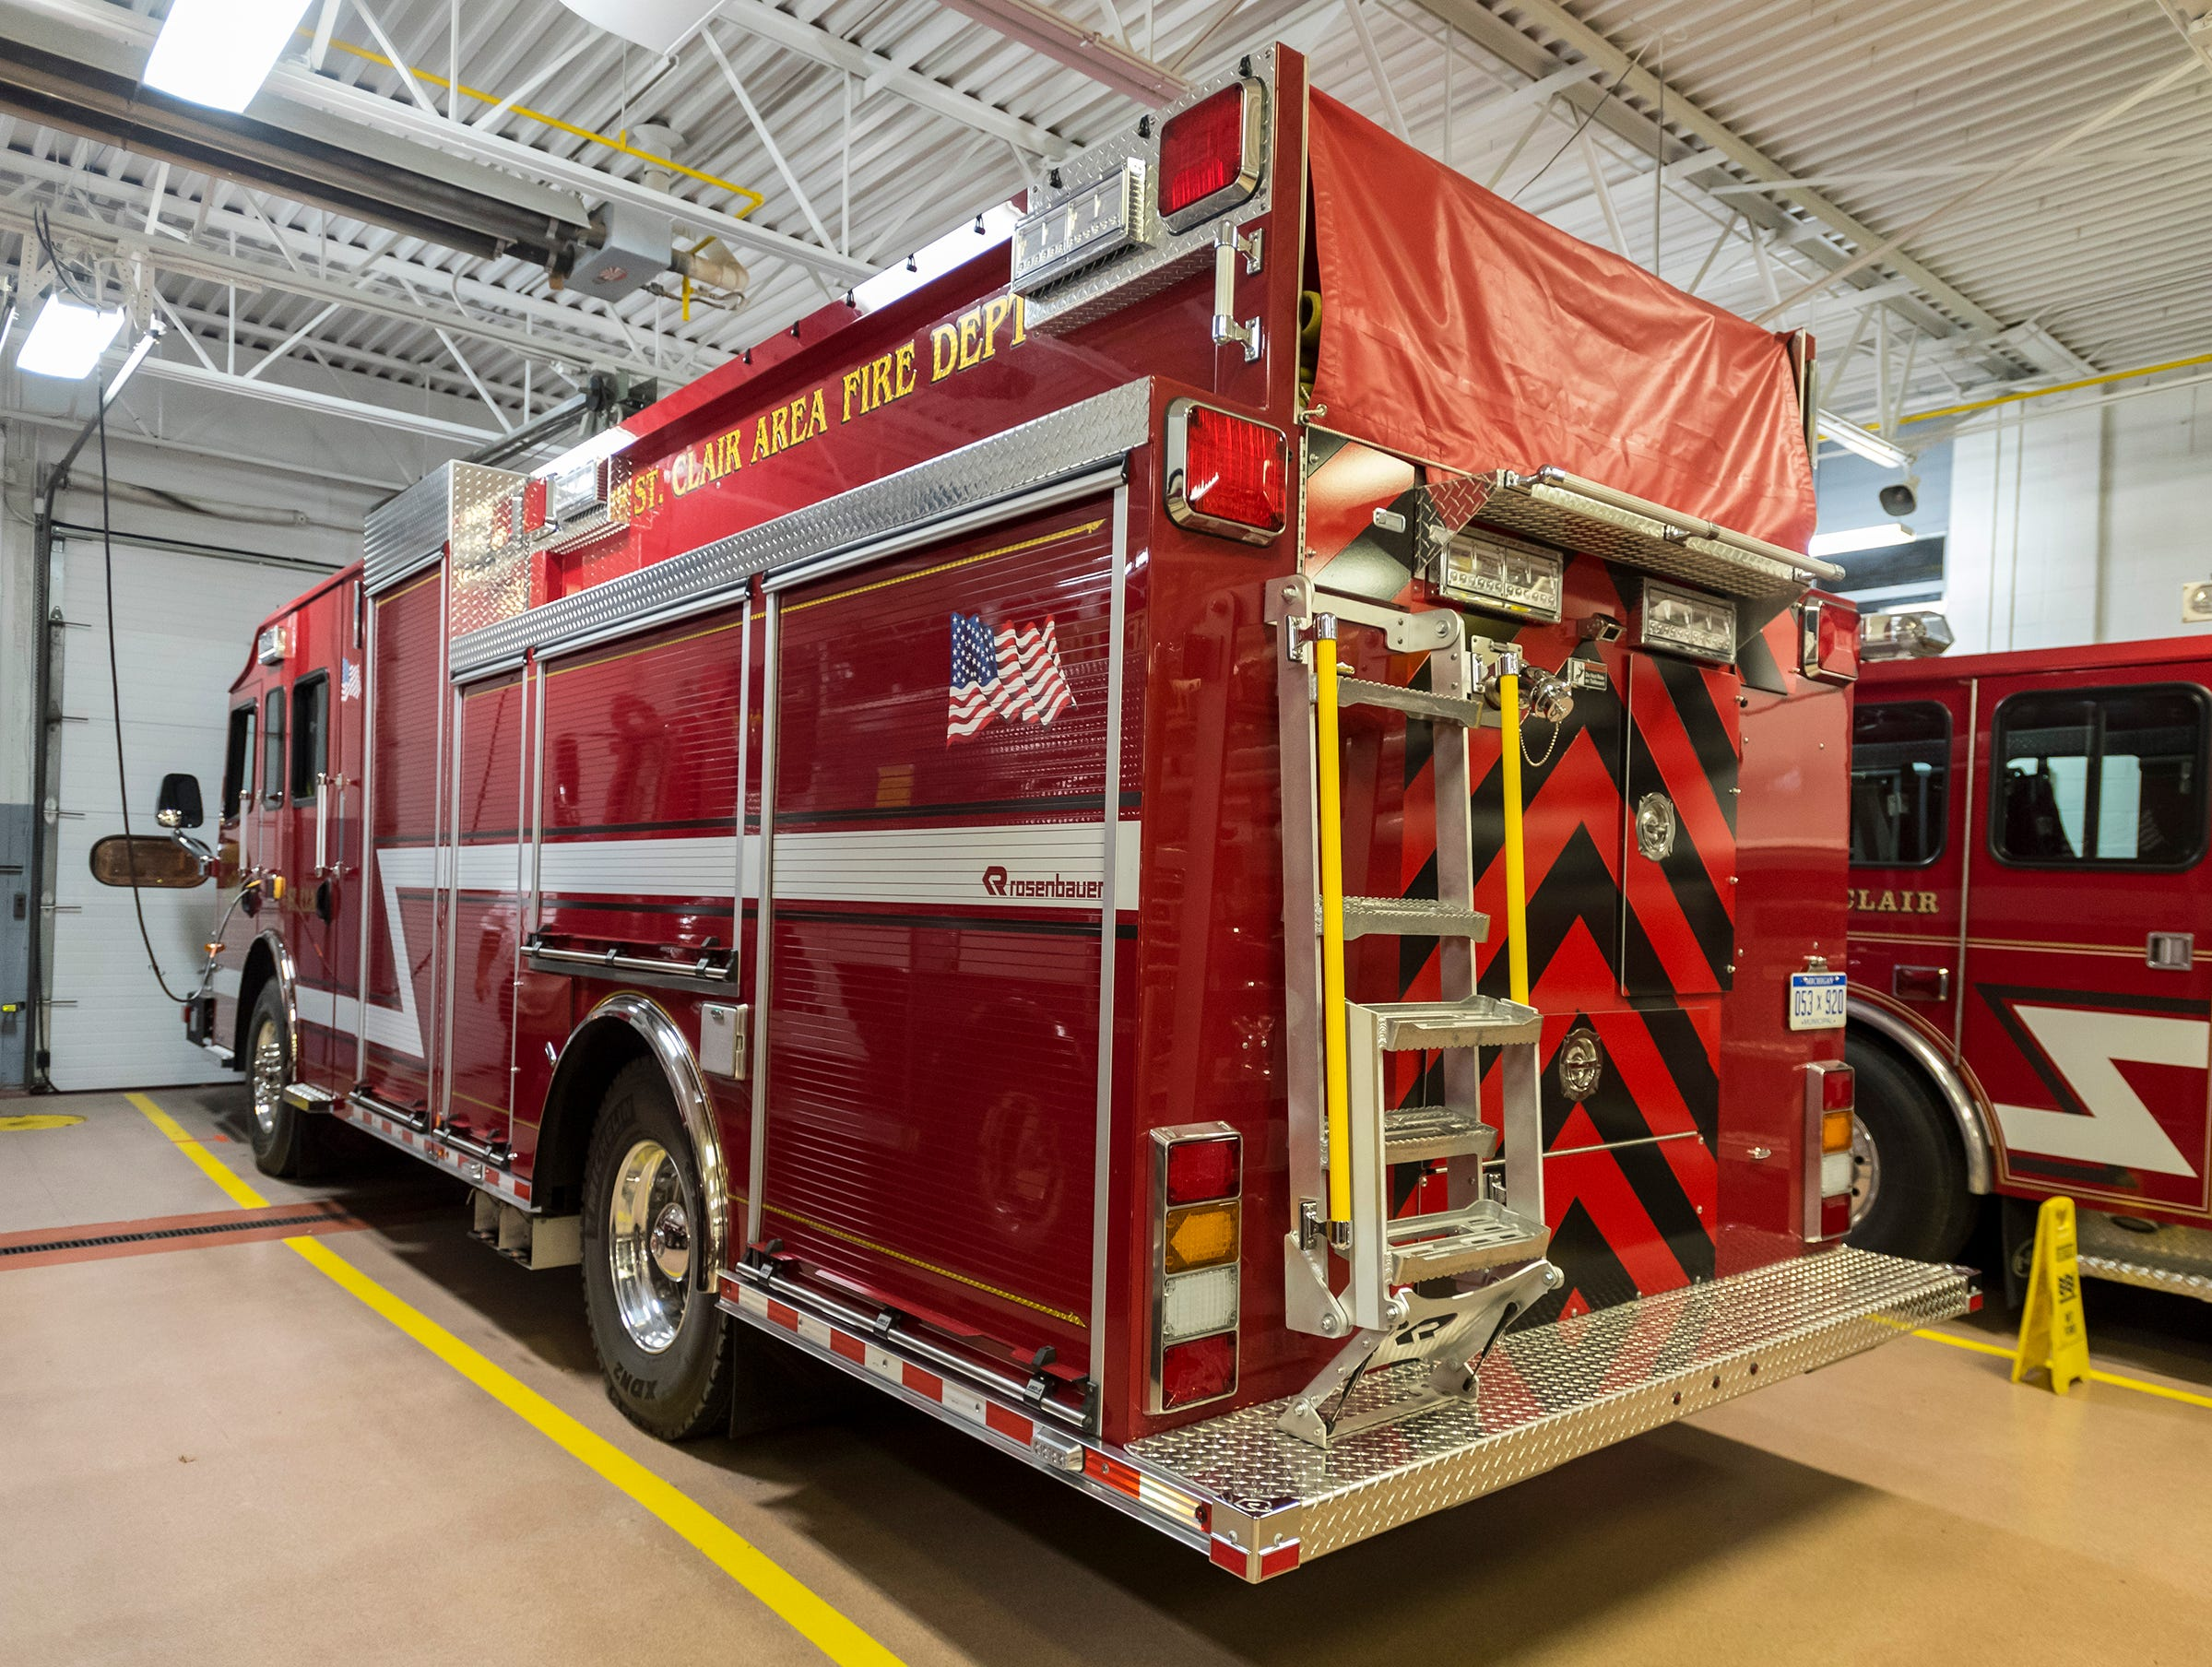 About two years ago, the St. Clair Area Fire Authority began the design process for it's new Rosenbauer pumper truck. The department took possession of the truckin September, and took it on its first run Monday.